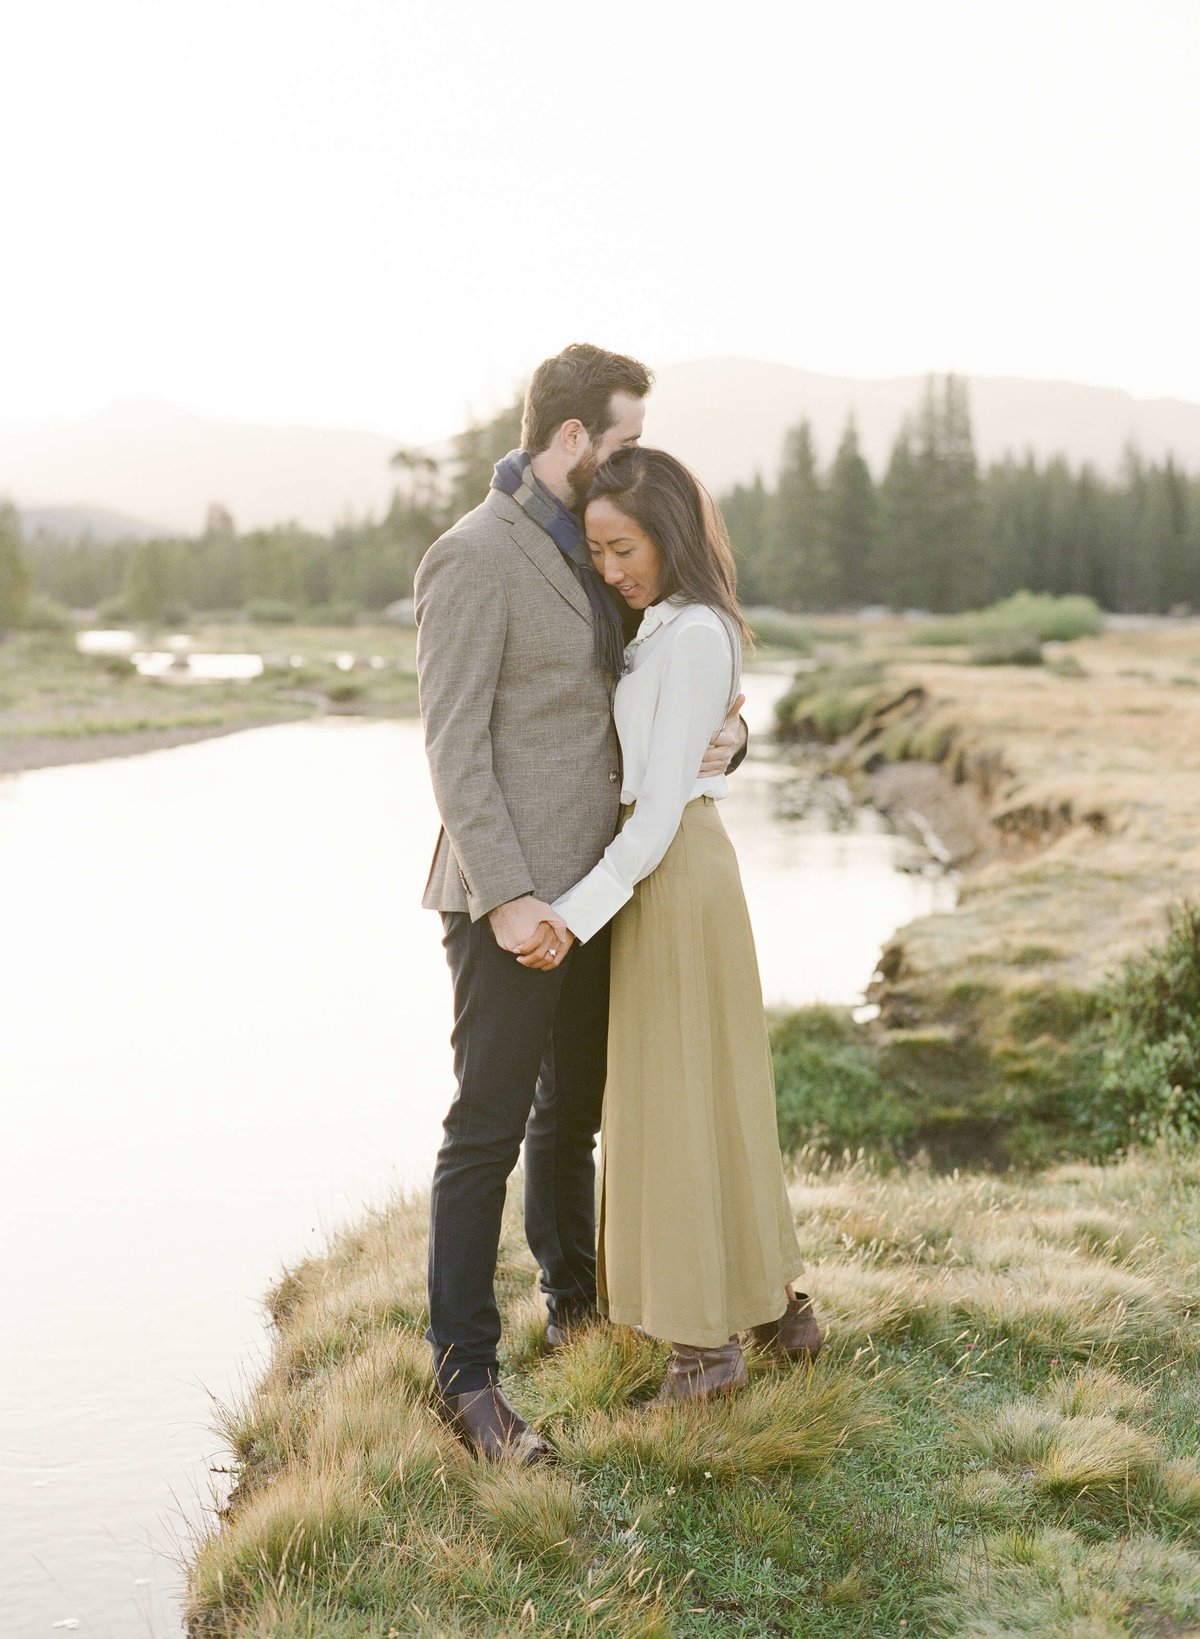 29-KTMerry-destination-engagement-couple-Yosemite-national-park